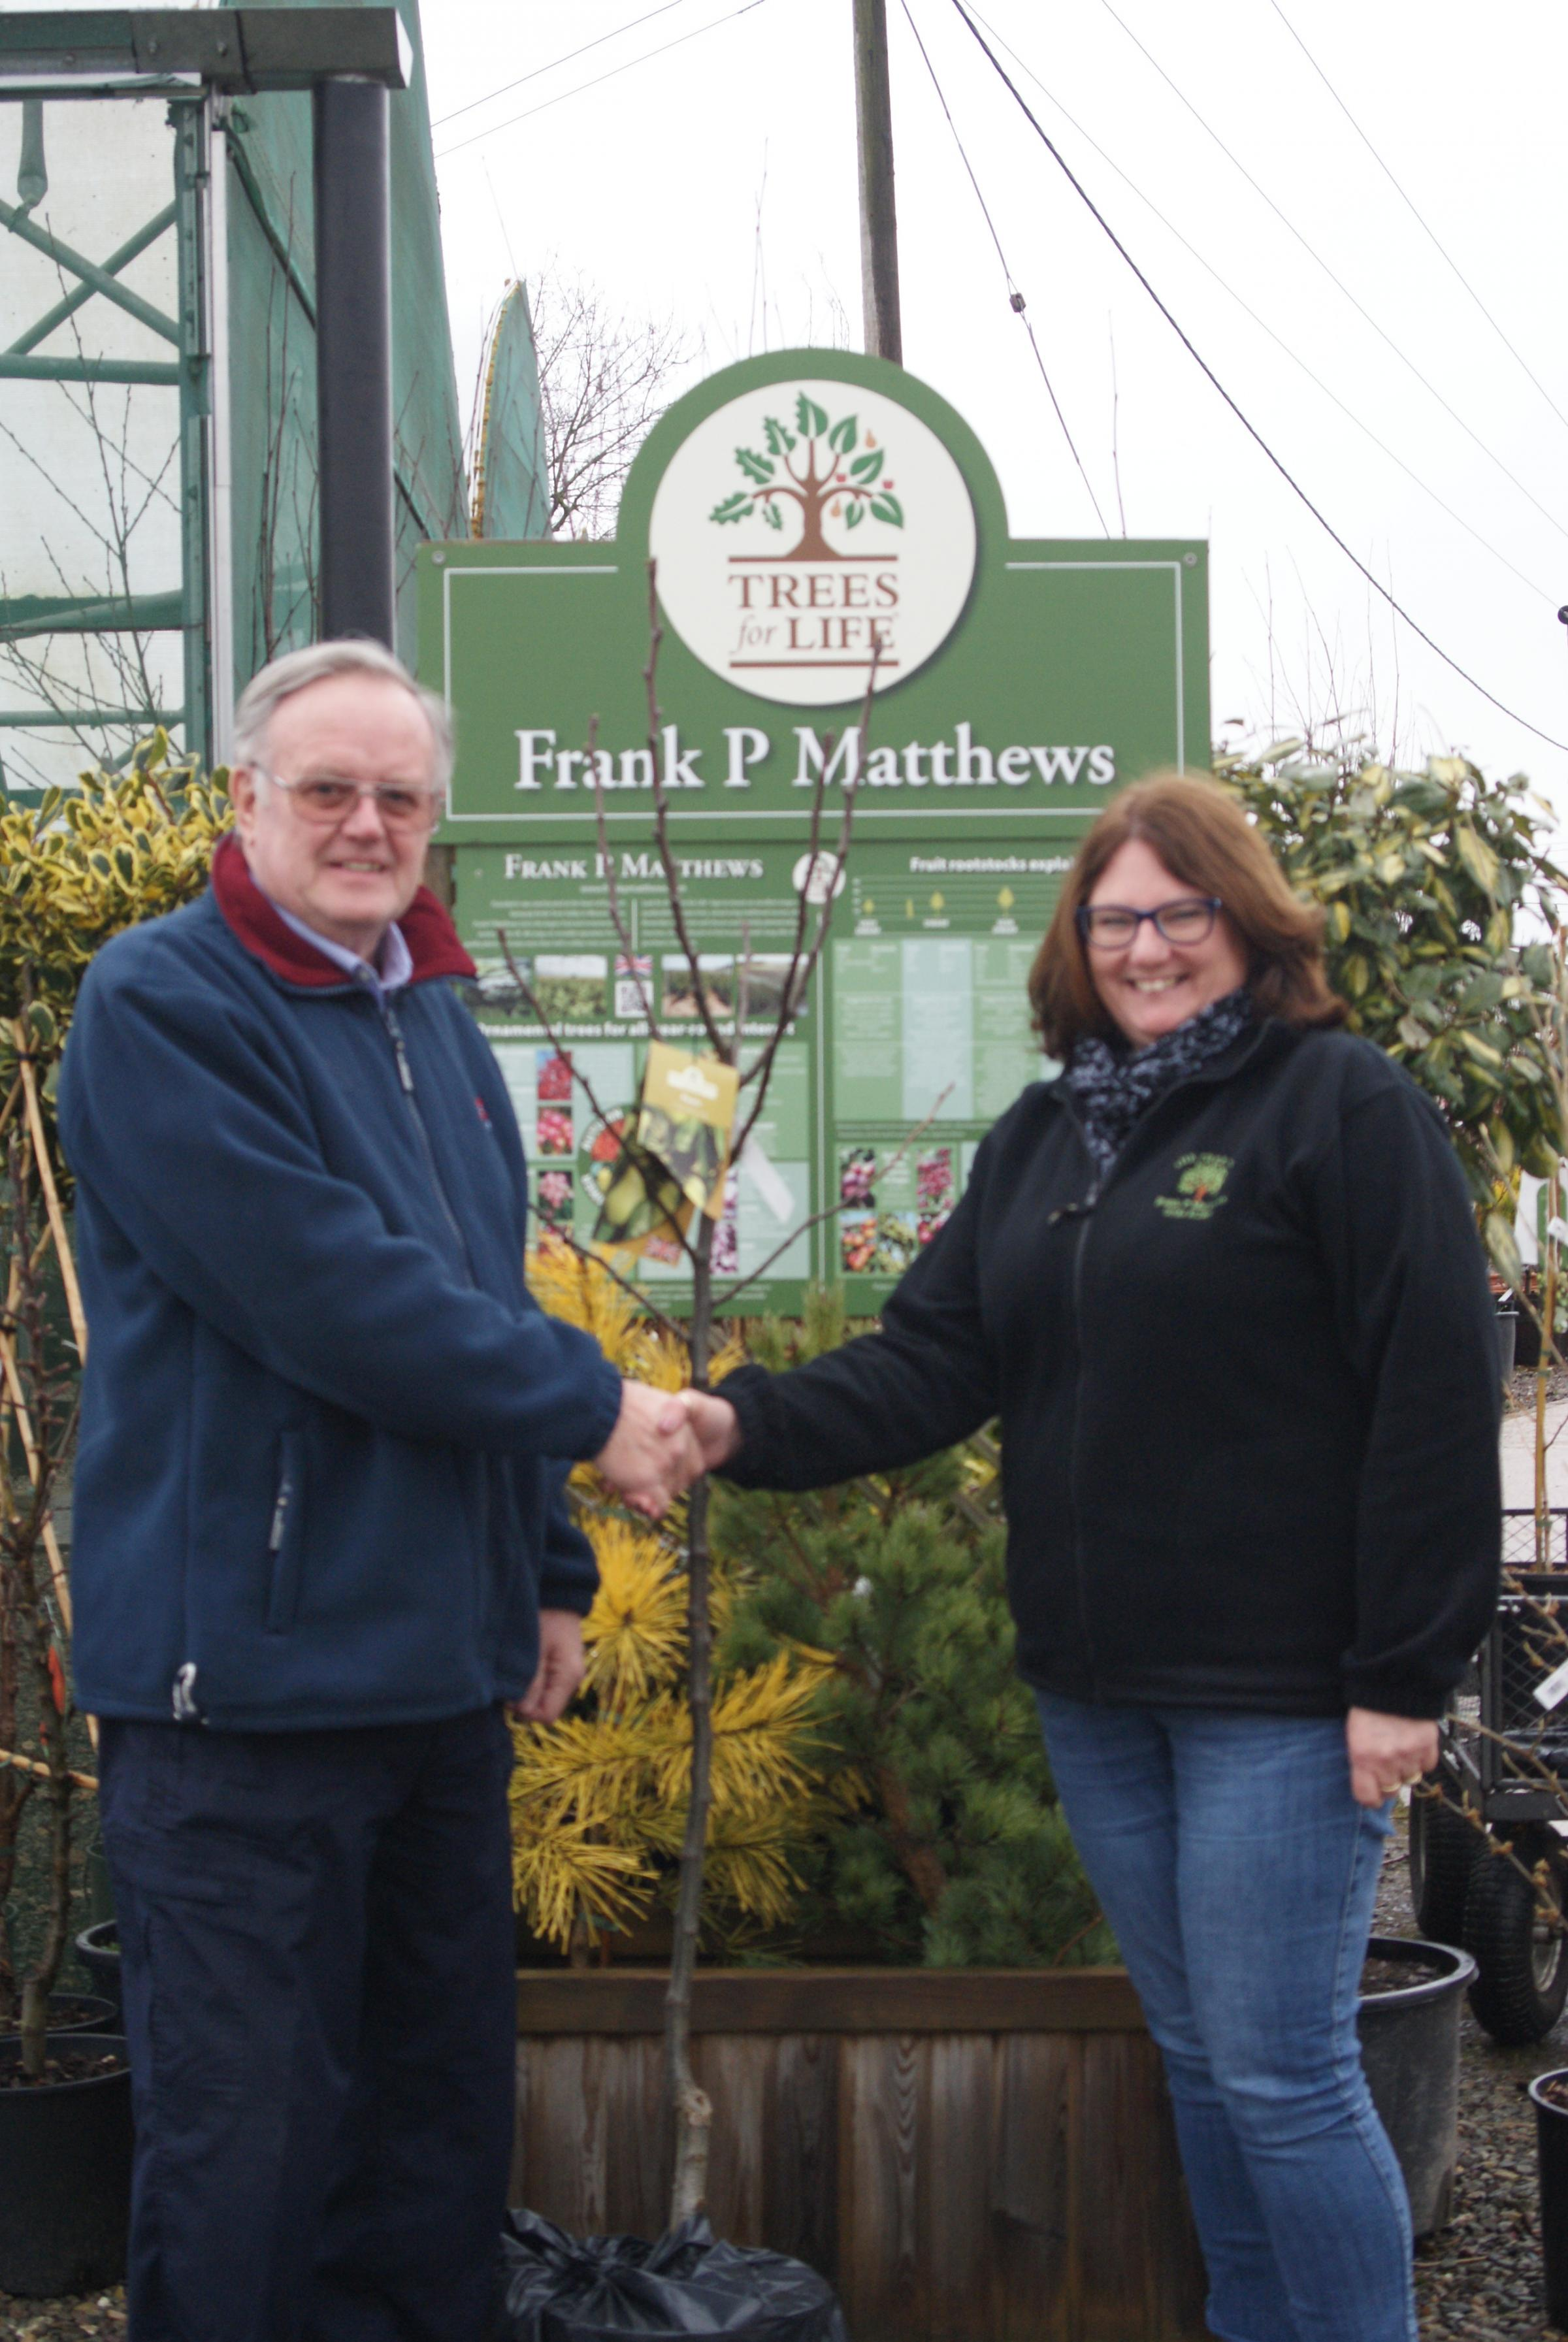 Cllr Hopwood receives the tree from Sandra Cooper of Tenbury Wells supplier Frank P Matthews Trees.